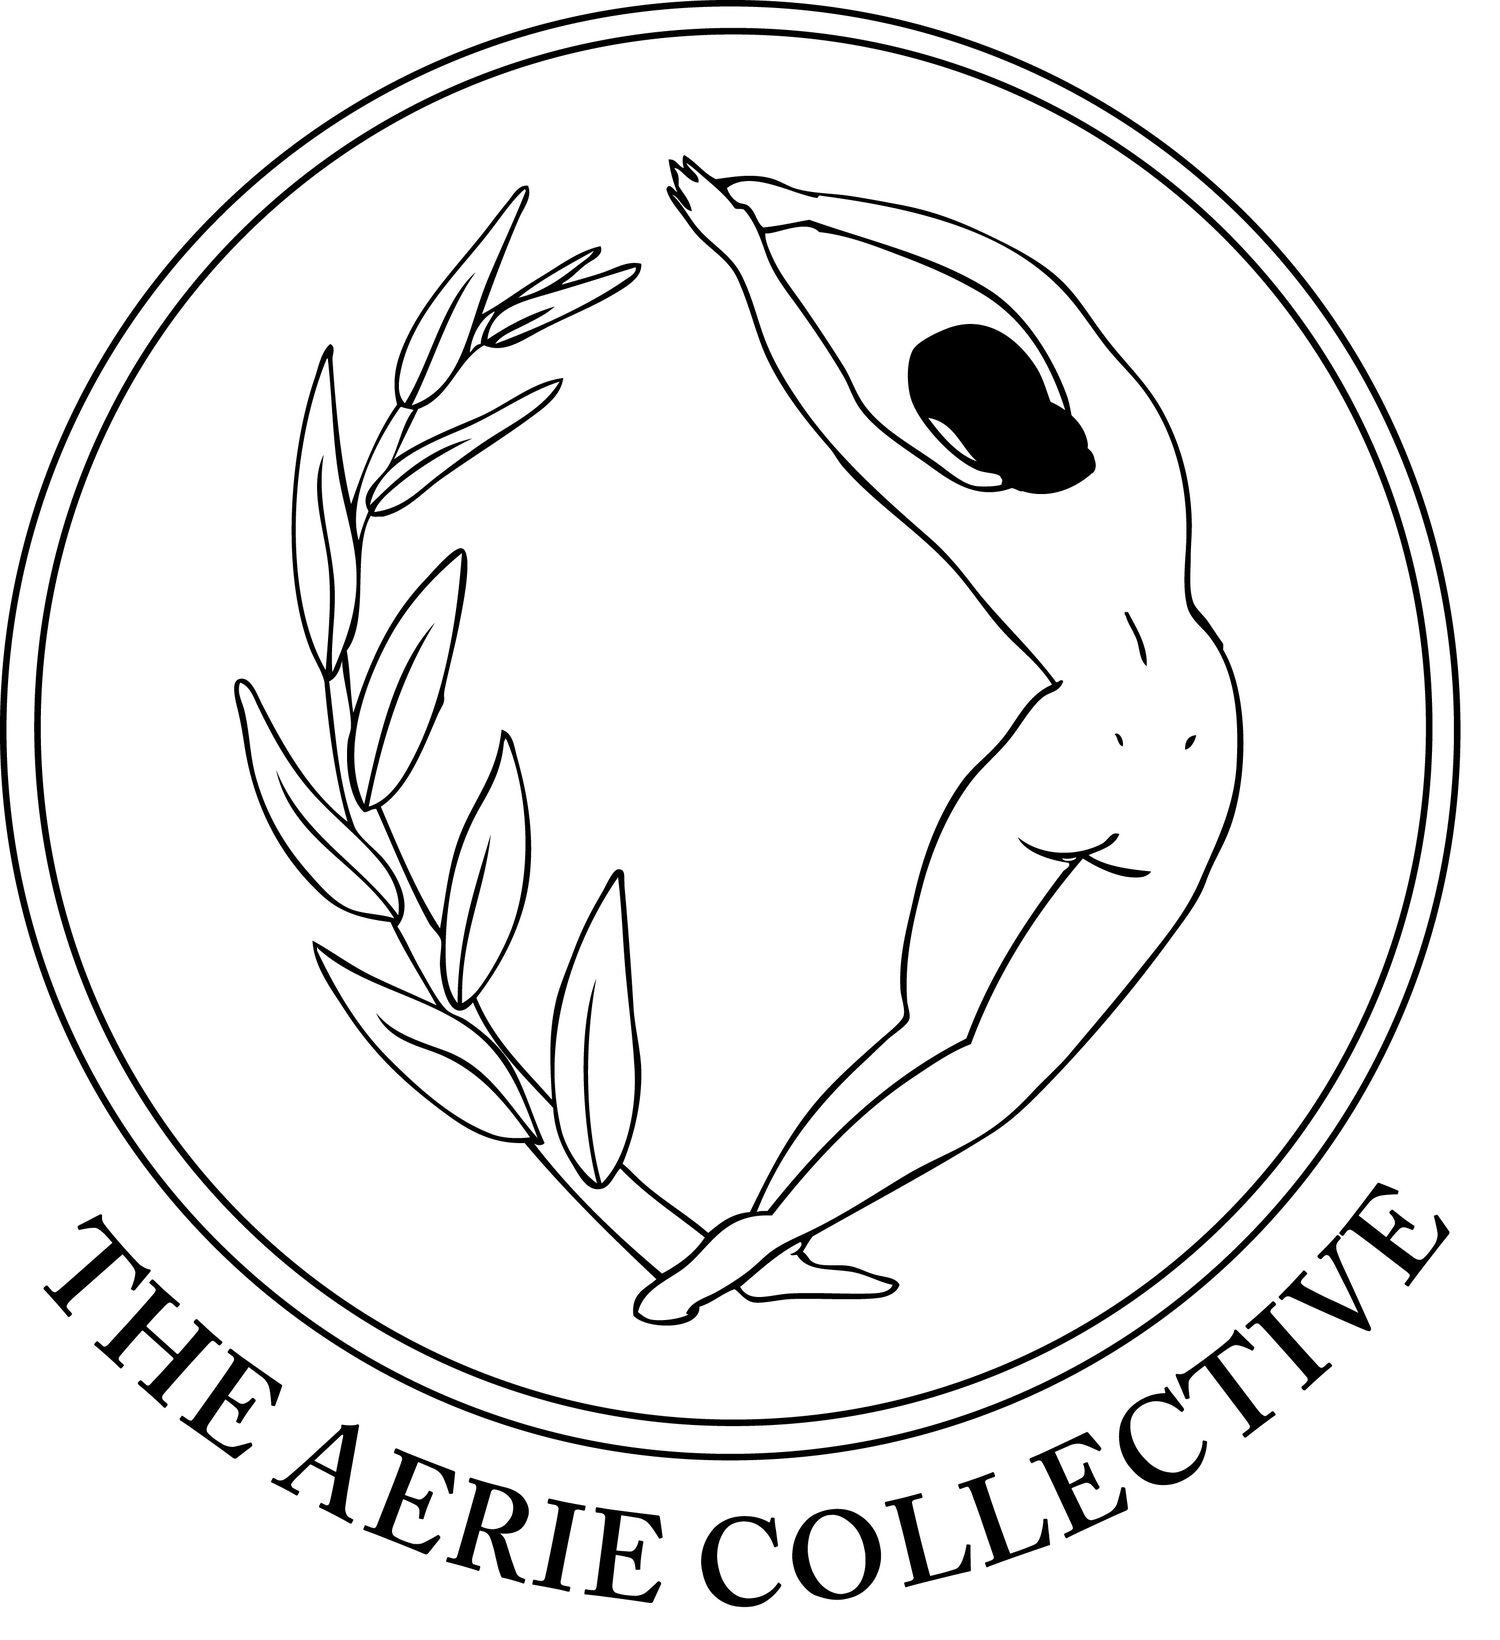 The Aerie Collective